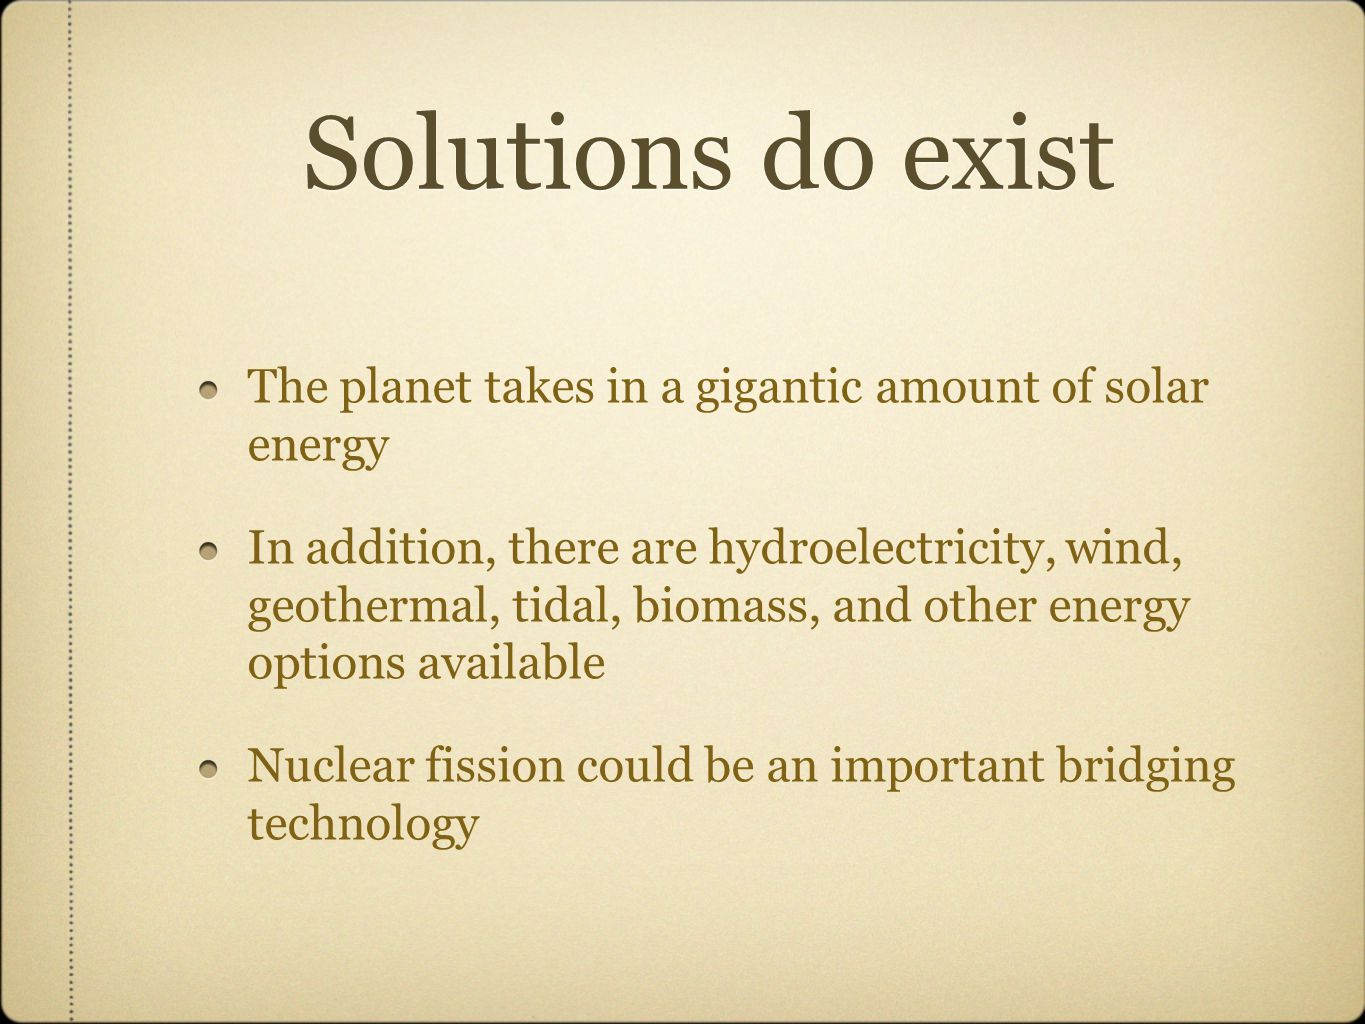 Solutions do exist The planet takes in a gigantic amount of solar energy In addition, there are hydroelectricity, wind, geothermal, tidal, biomass, and other energy options available Nuclear fission could be an important bridging technology